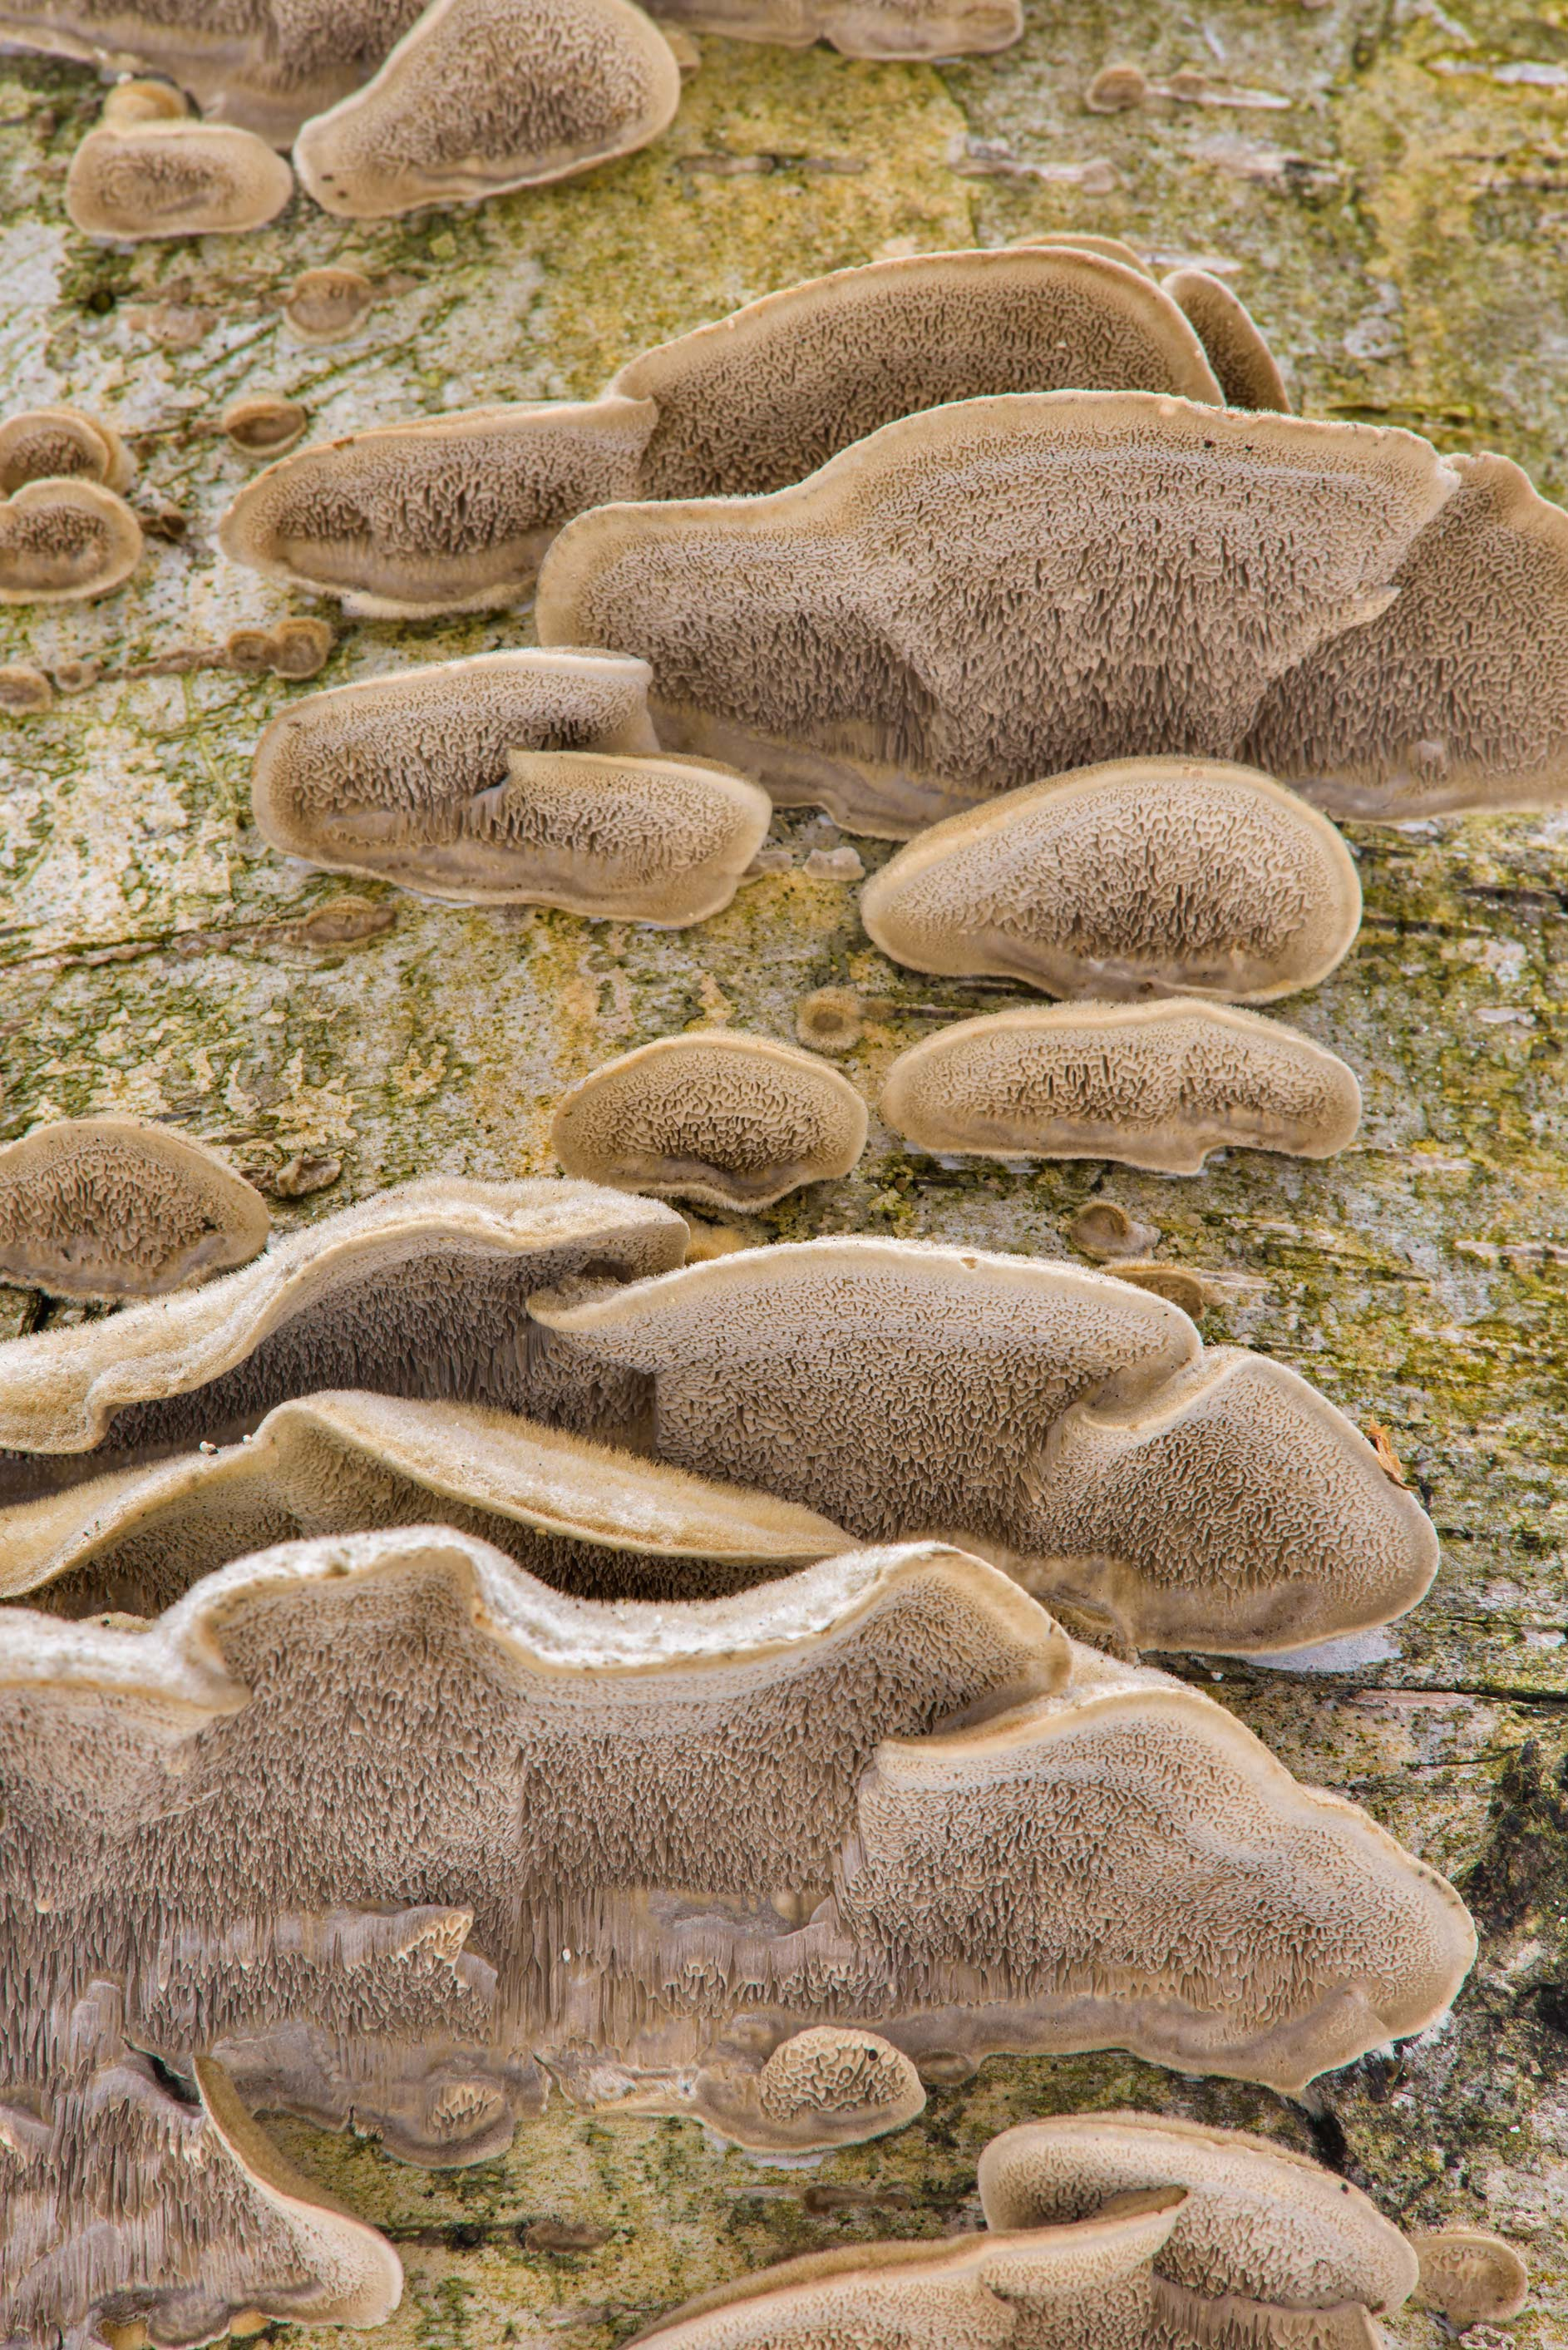 Mossy maze polypore mushrooms (Cerrena unicolor) in Udelny Park. St.Petersburg, Russia